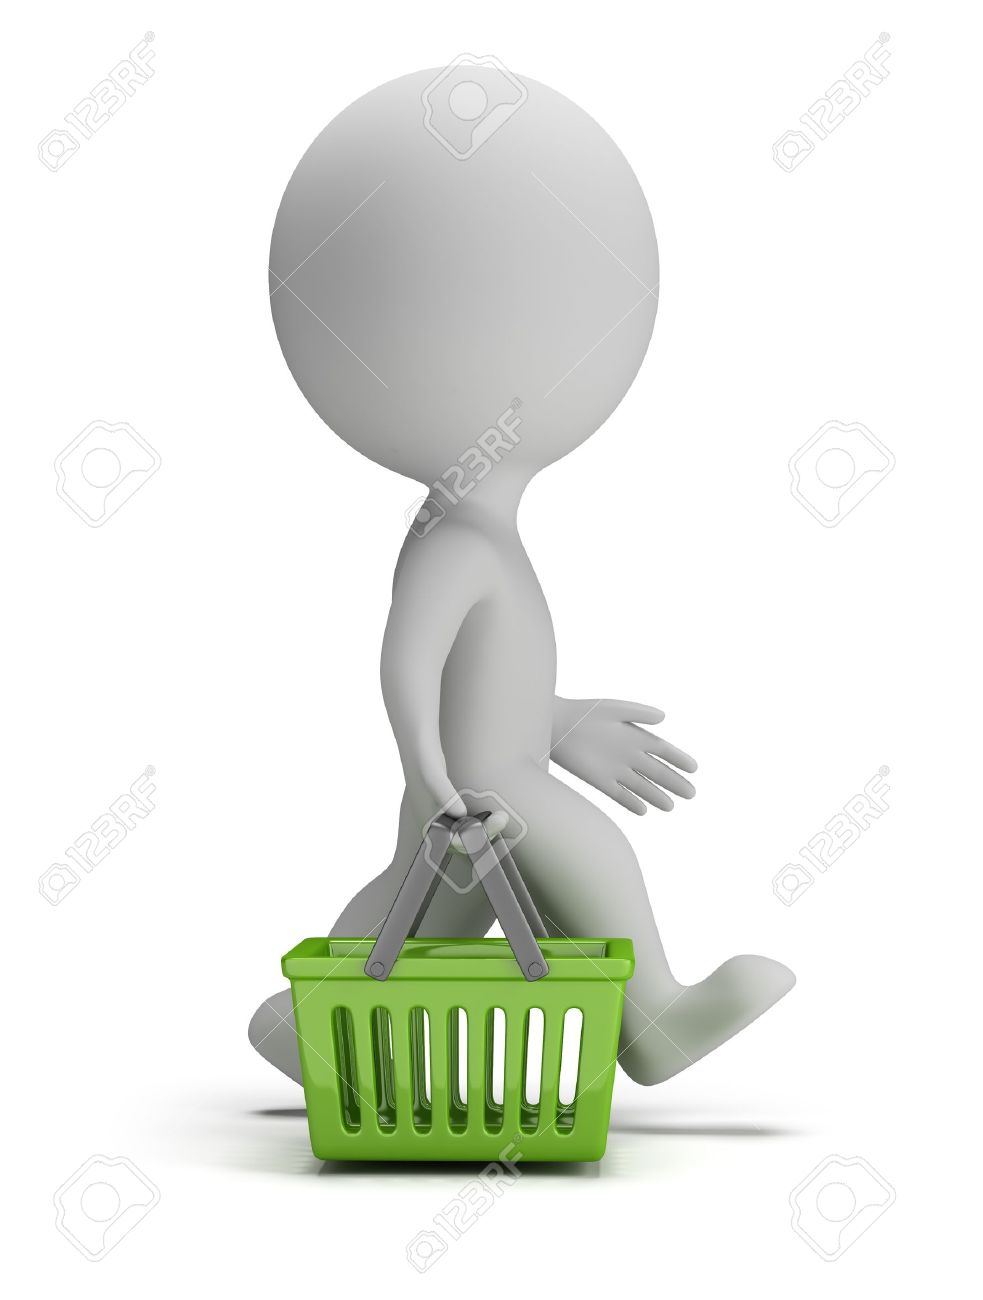 3d small person goes with a green shopping basket. 3d image. White background. Stock Photo - 19874617